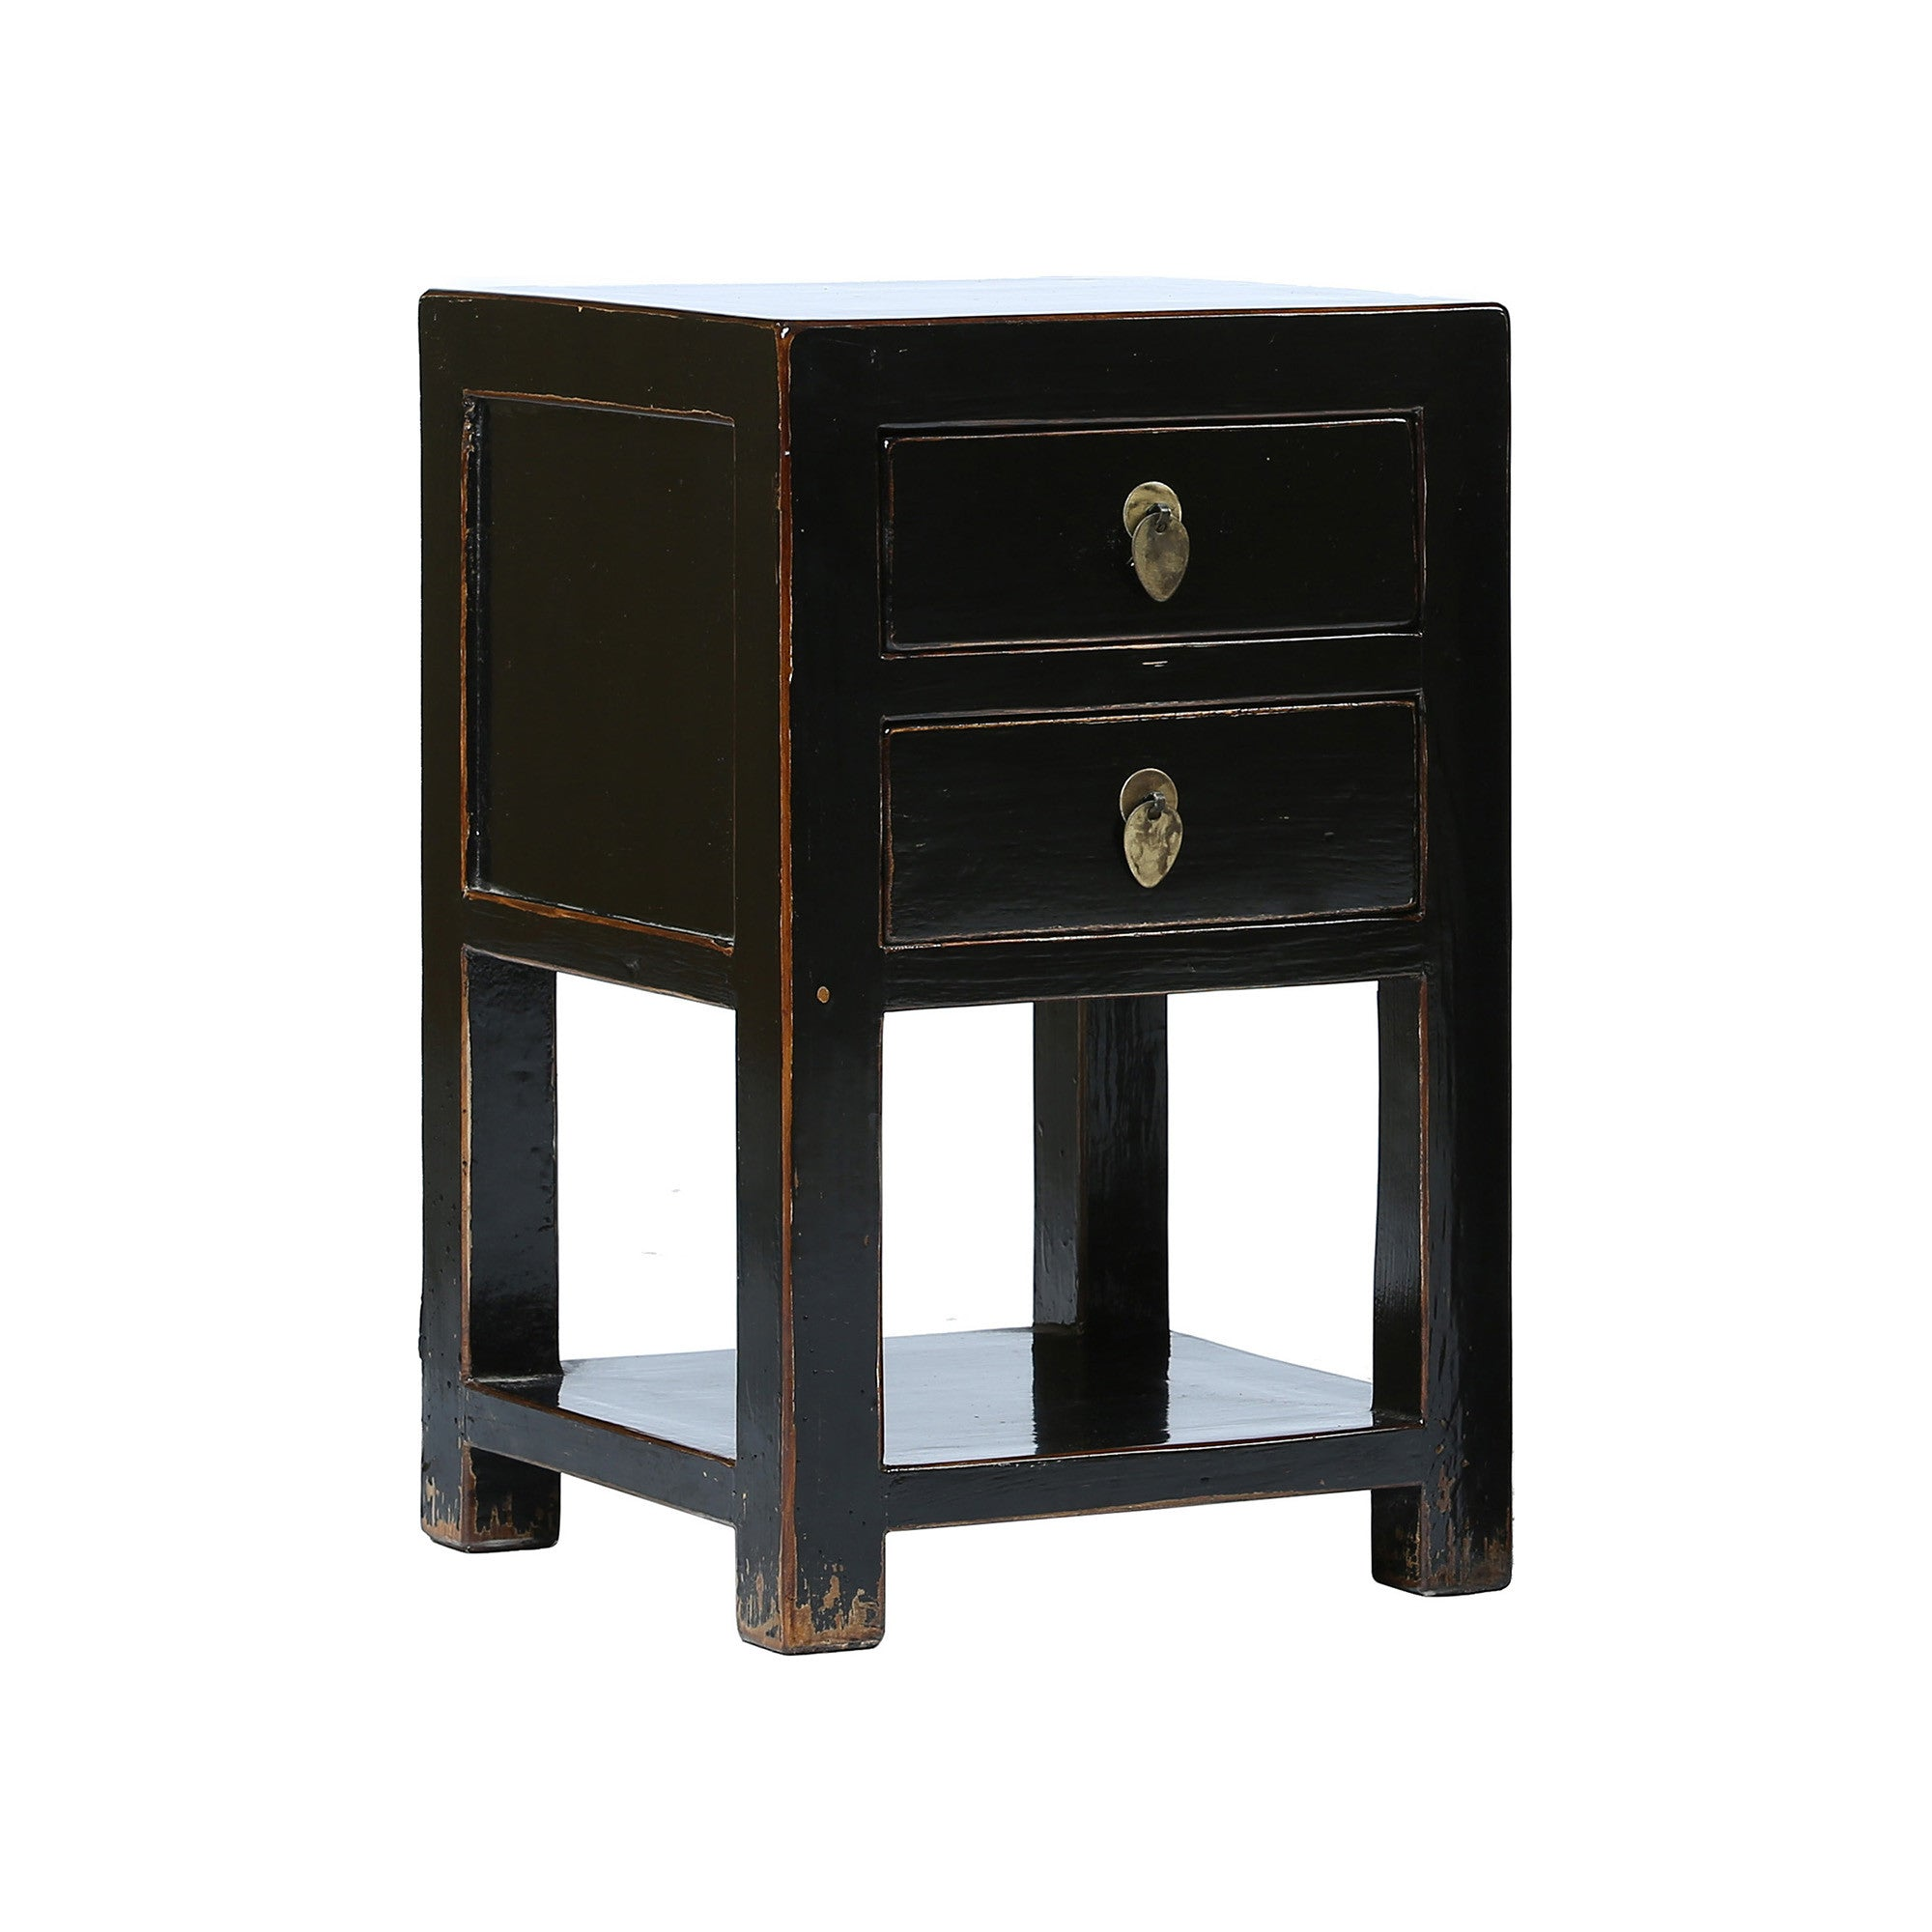 Black Chinese Bedside Table - Chinese homewares- Rouge Shop antique stores London - city furniture